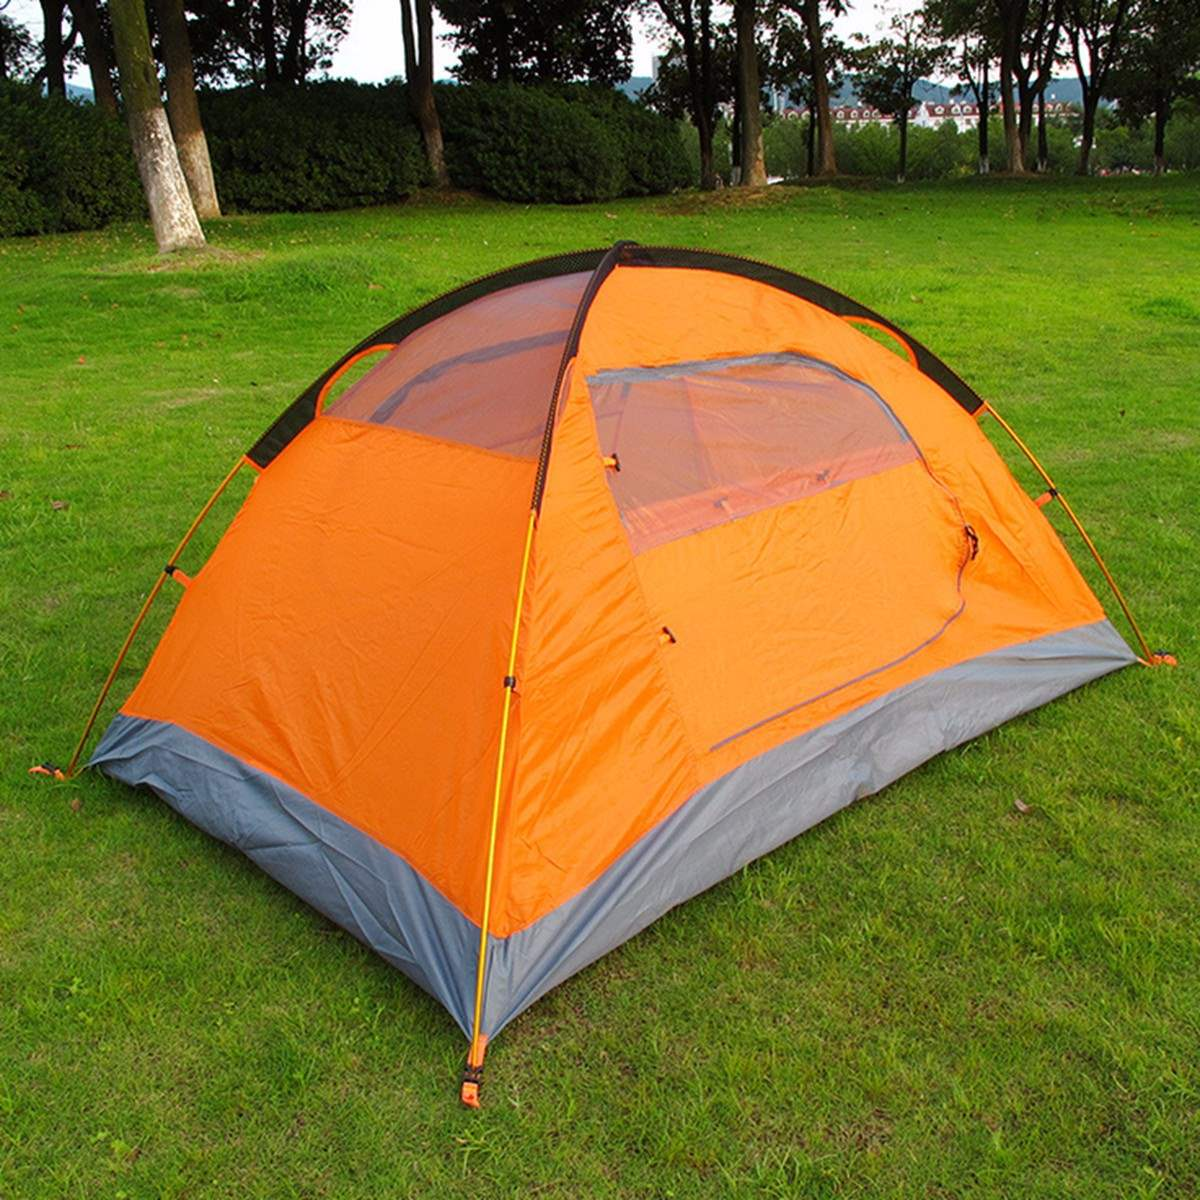 1set Outdoor Tourist double layer 4 season aluminum rod windproof waterproof professional camping tent high quality outdoor 2 person camping tent double layer aluminum rod ultralight tent with snow skirt oneroad windsnow 2 plus